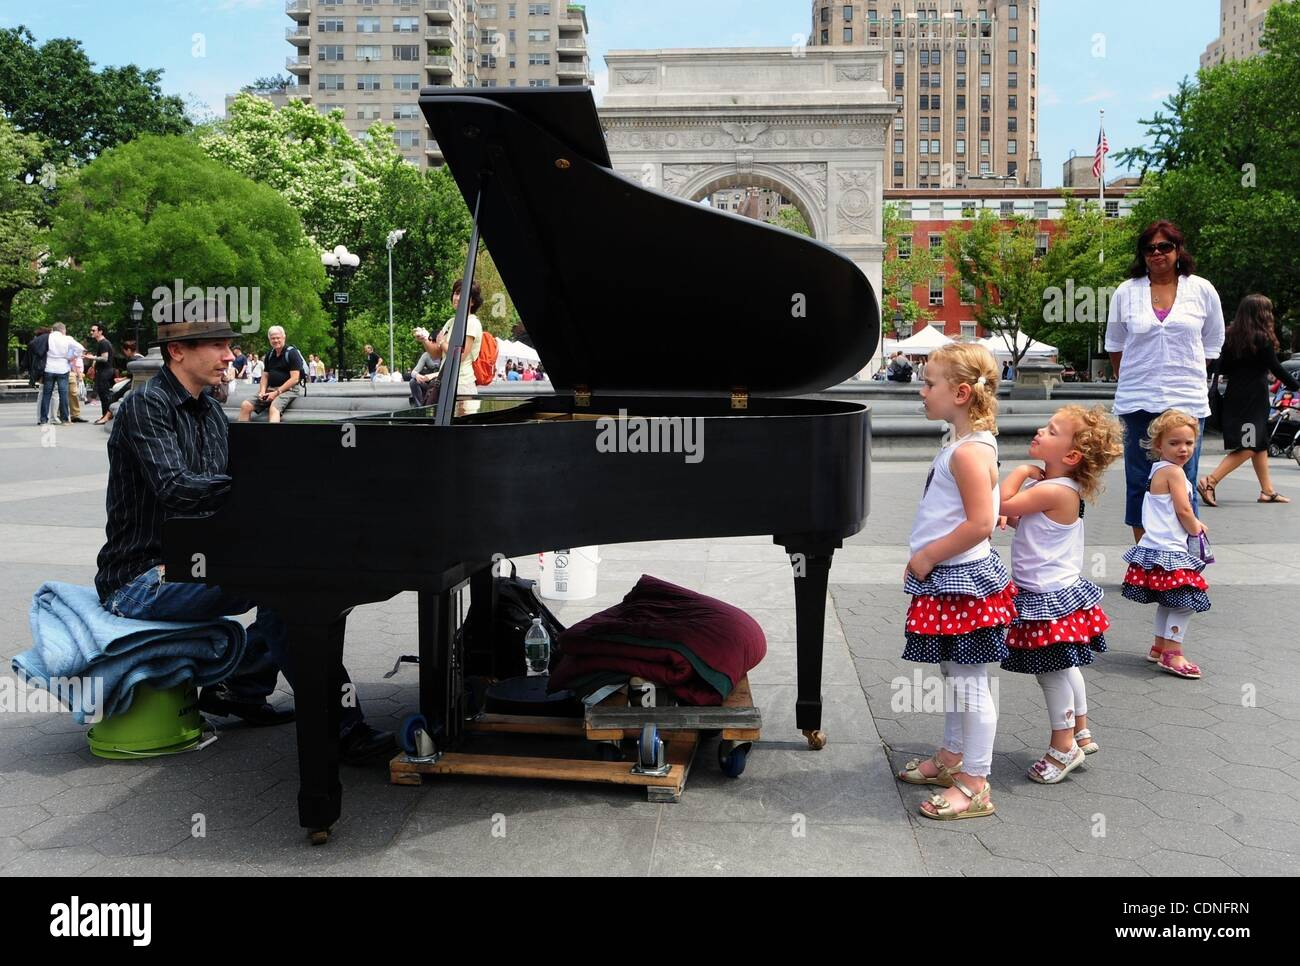 June 4, 2011 - Manhattan, New York, U.S. - Sisters Juliet, Victoria and Diana look on as Colin plays the piano in - Stock Image